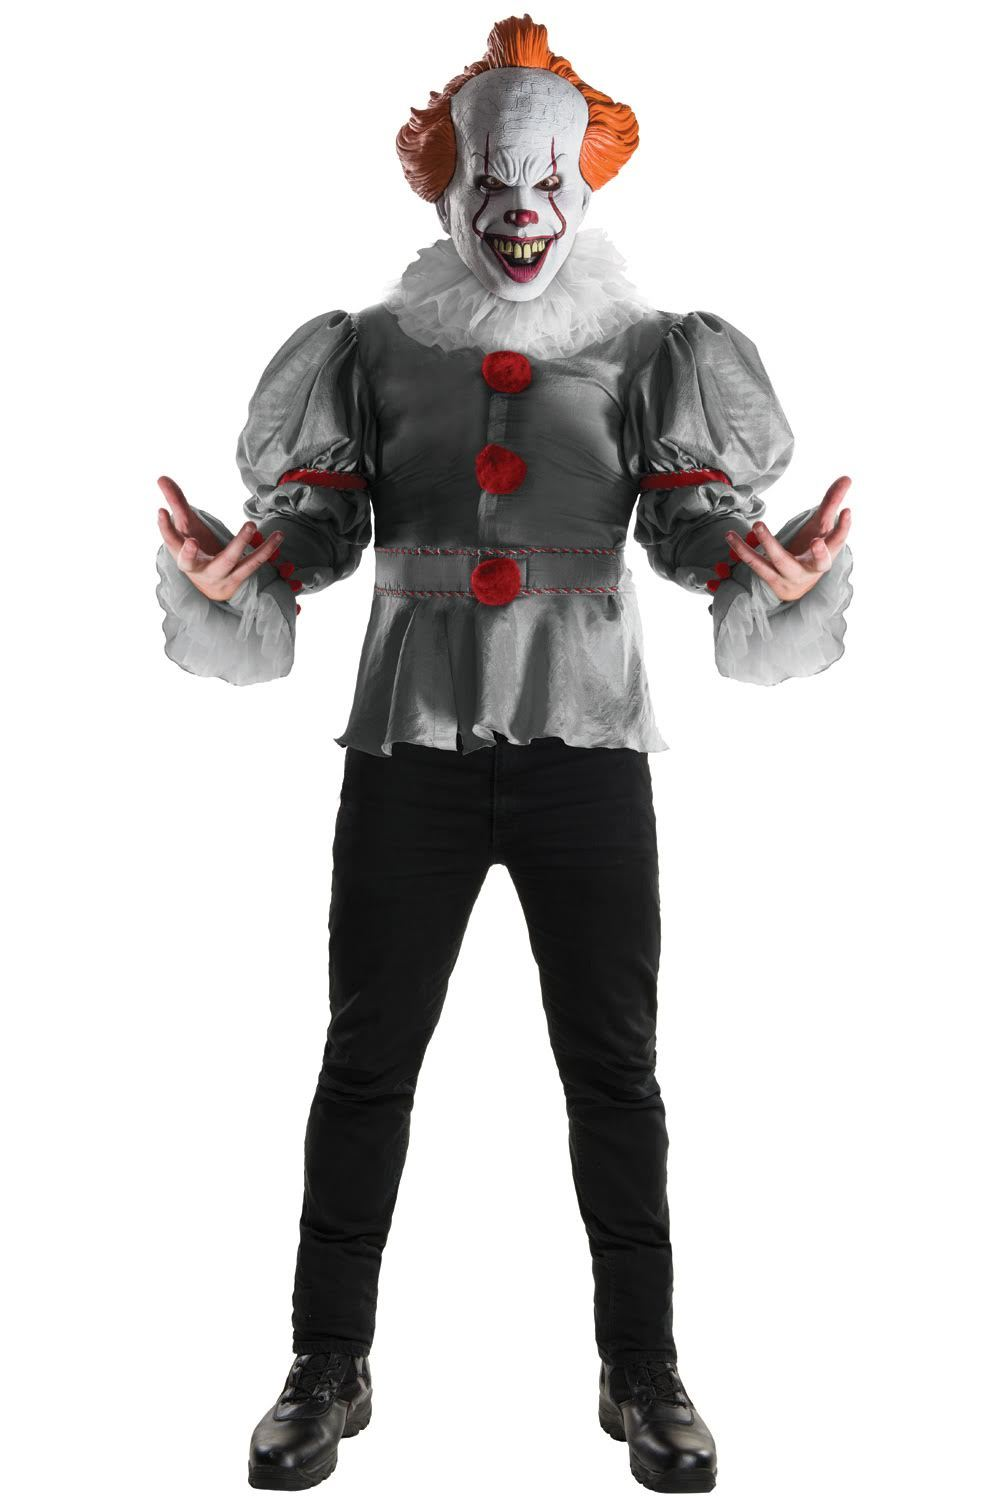 IT - Pennywise Costume (X-Large) image